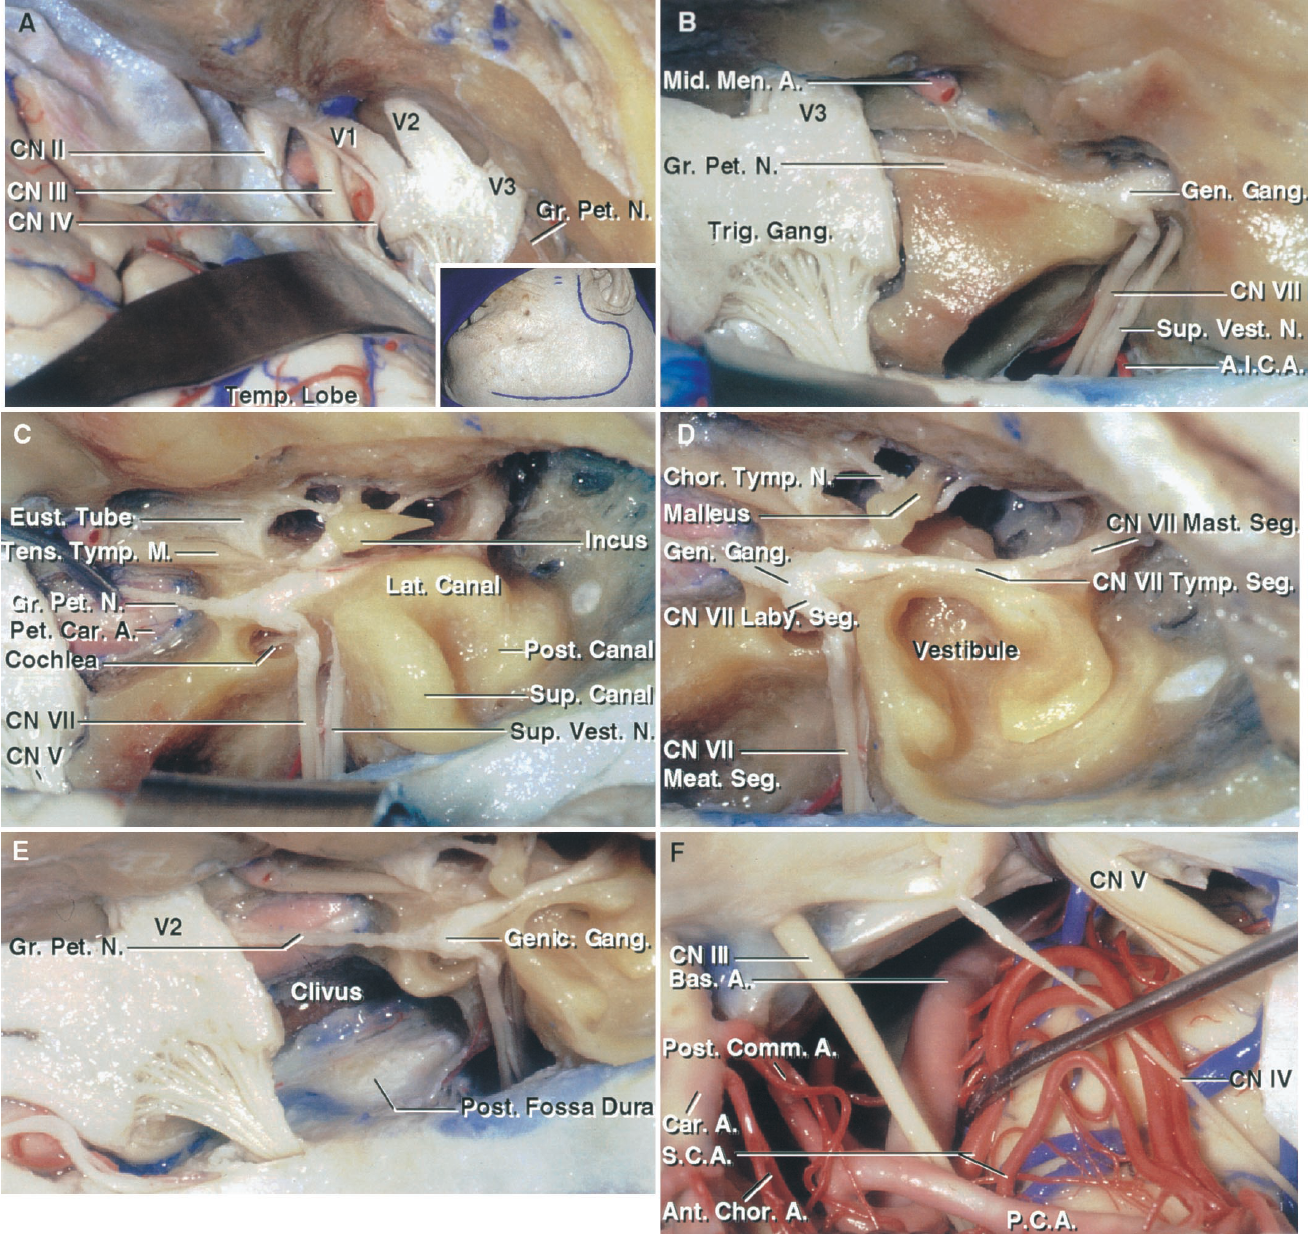 FIGURE 8.13. A–F. Subtemporal exposure of the right middle, infratemporal, and posterior fossae. A, the insert shows the side of the scalp incision. A frontotemporal craniotomy has been completed and the dura has been elevated from the middle fossa floor and lateral wall of the cavernous sinus. B, enlarged view. The bony roof over the geniculate ganglion and internal meatus has been removed and the dura lining the meatus opened to expose the facial and superior vestibular nerves. C, additional middle fossa floor has been removed to expose the petrous carotid, the cochlea in the angle between the greater petrosal nerve and pregeniculate part of the facial nerve, the semicircular canals and tympanic cavity. The tensor tympani muscle and eustachian tube are exposed in front of the petrous carotid artery. D, the bone between the superior and posterior canals has been removed to expose the vestibule with which both ends of the semicircular canals communicate. The vestibule contains the utricle and saccule and communicates below the fundus of the meatus with the cochlea. The meatal segment of the facial nerve courses in the internal acoustic meatus, the labyrinthine segment between the semicircular canals and the cochlea, the tympanic segment between the anterior margin of the lateral canal and the oval window on the medial side of the tympanic cavity, and the mastoid segment descends to exit the stylomastoid foramen. E, the petrous apex, medial to the cochlea and extending under the trigeminal nerve, has been removed to expose the lateral edge of the clivus and the posterior fossa dura. F, the medial tentorial edge has been divided behind the petrous ridge to expose the oculomotor, trochlear, and trigeminal nerves and the basilar artery. A., artery; A.I.C.A., anteroinferior cerebellar artery; Alv., alveolar; Ant., anterior; Bas., basilar; Car., carotid; Chor., chorda, choroidal; CN, cranial nerve; Comm., communicating; Eust., eustachian; Gang., ganglion; Gen., geniculate